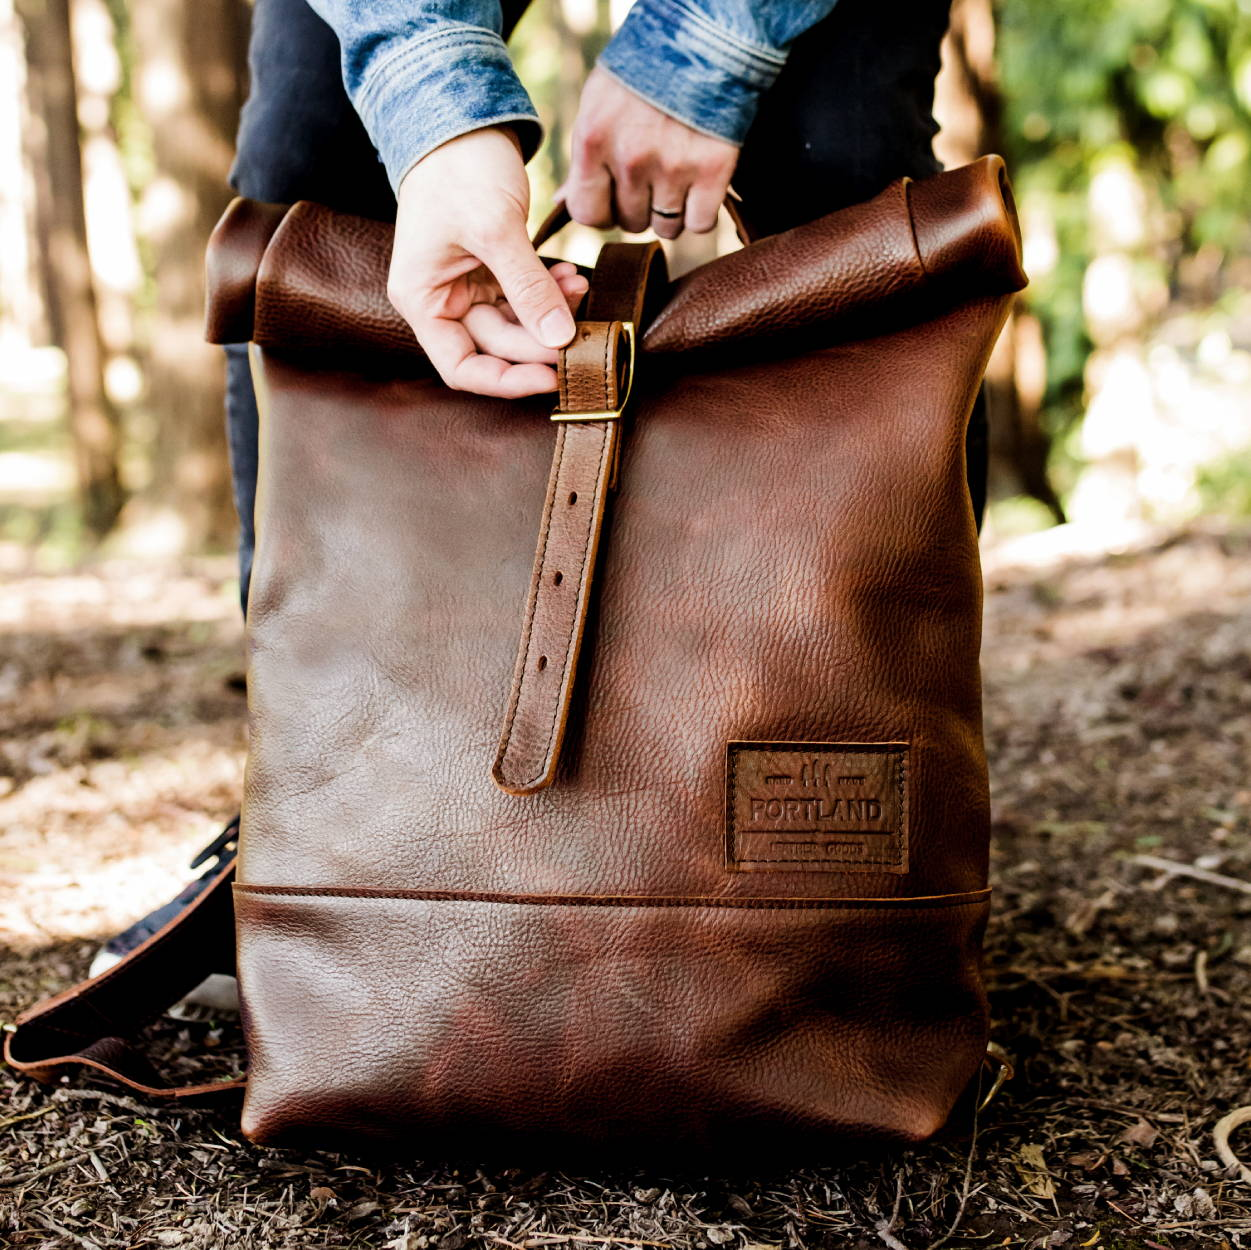 mans hands unbuckling rolltop leather backpack in a forest setting